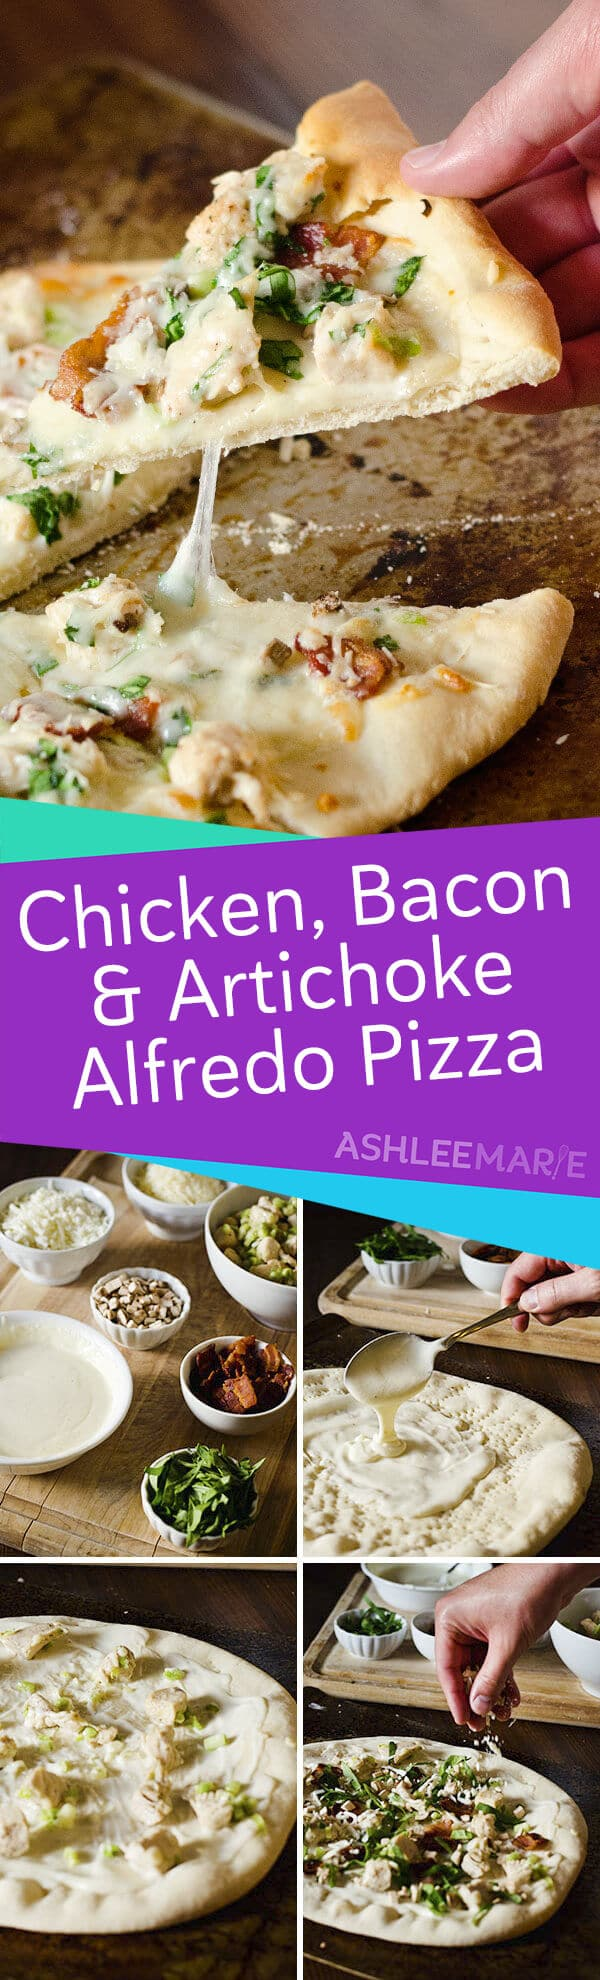 chicken bacon and artichoke alfredo pizza